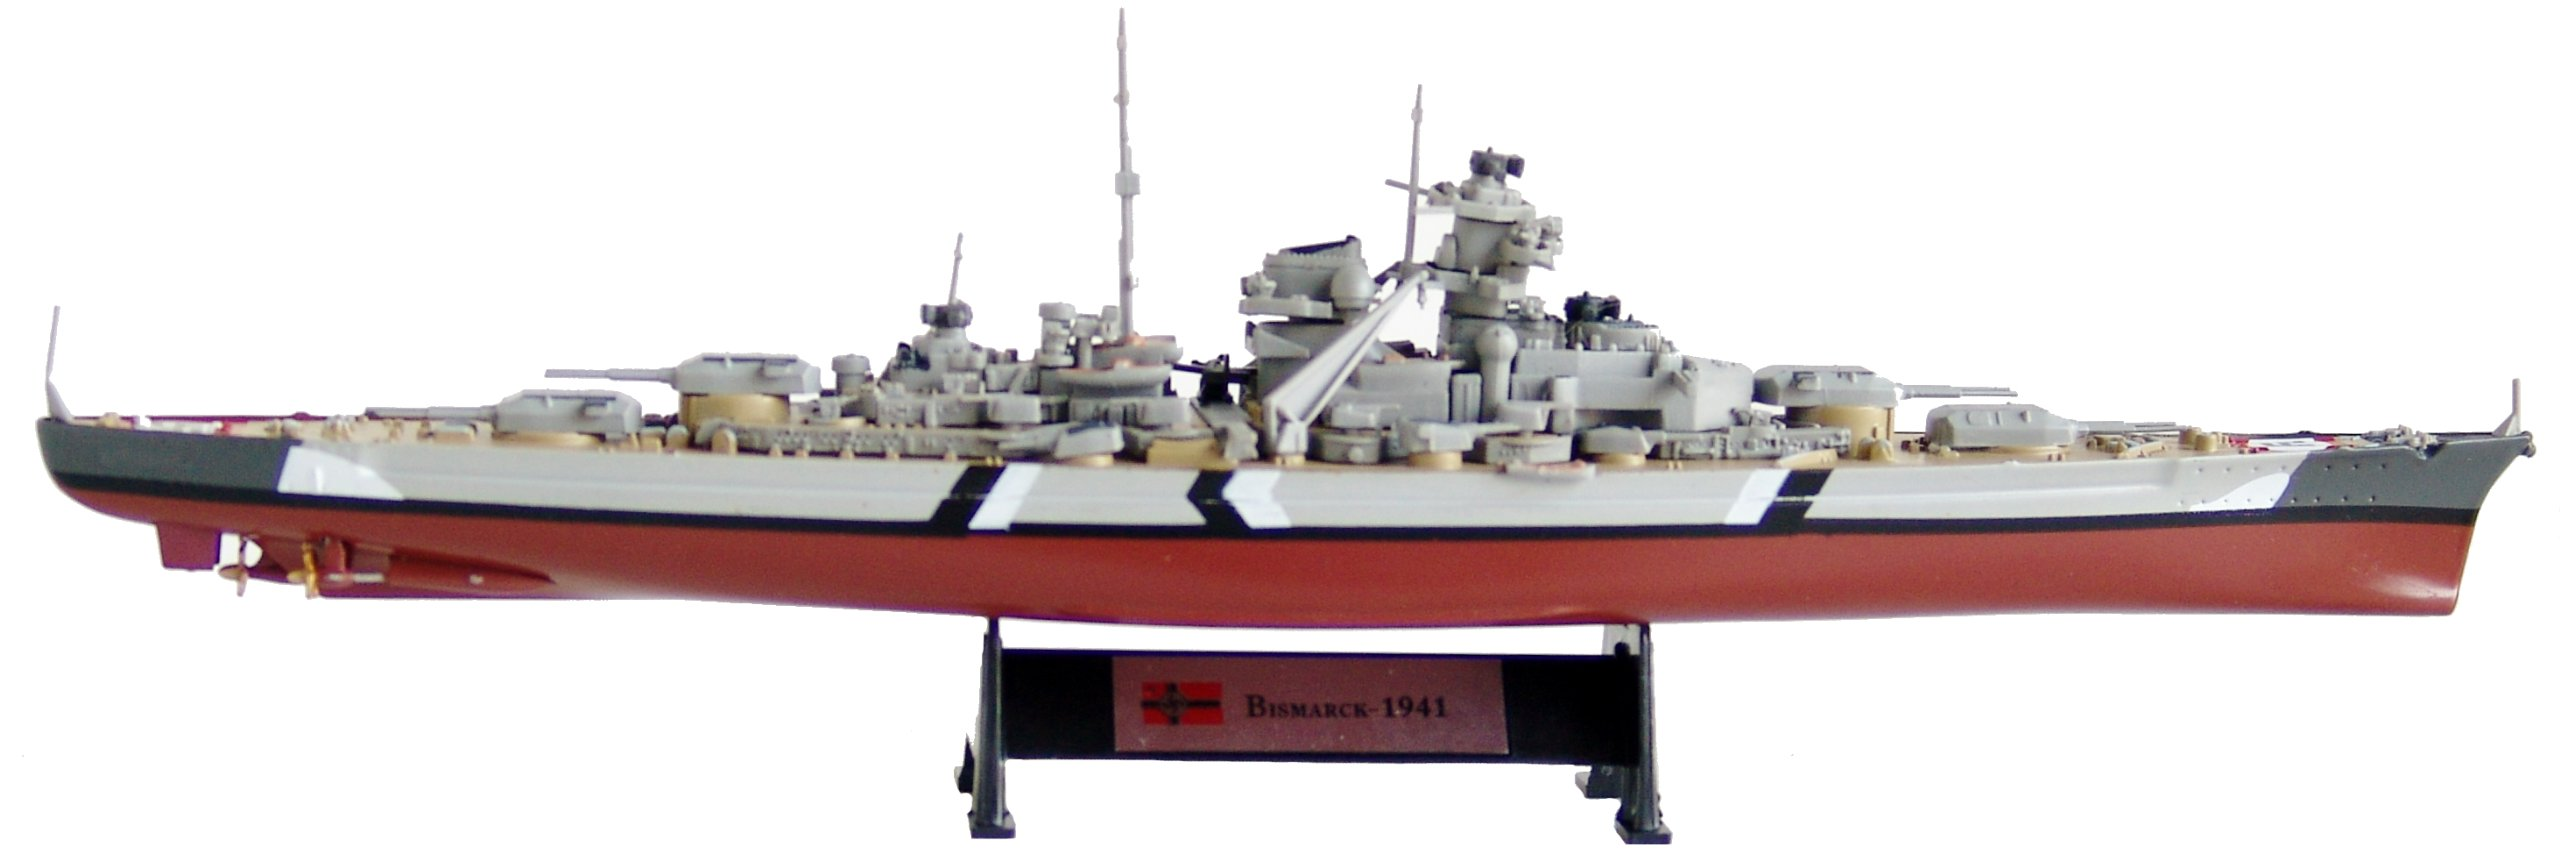 Bismarck 1941 - 1:1000 Ship Model (Amercom ST-1) by Bismarck